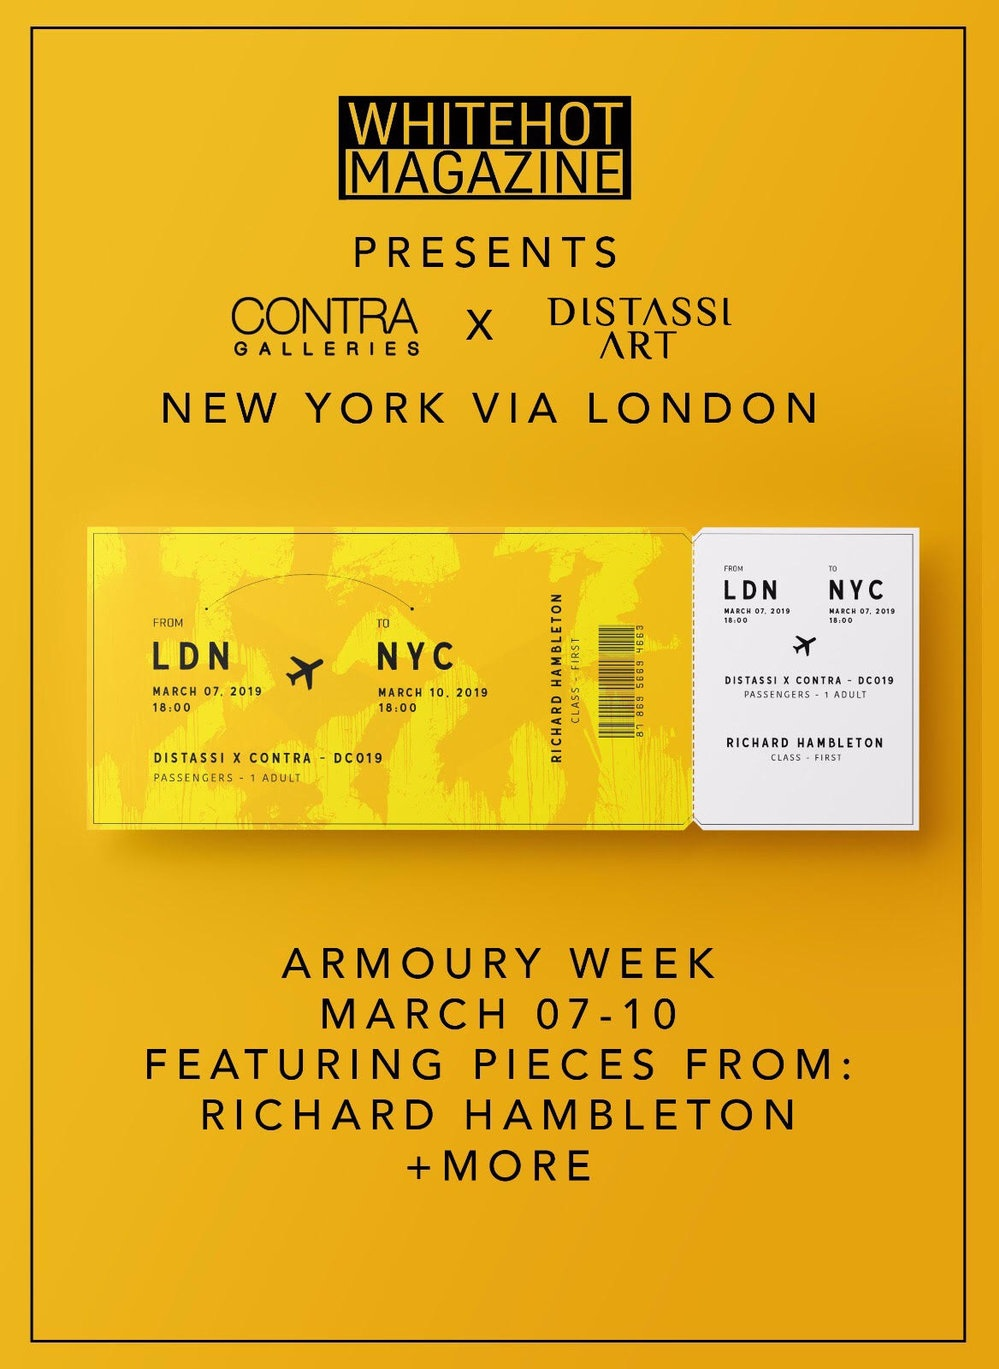 WHITEHOT MAGAZINE PRESENTS - CONTRA GALLERIES X DISTASSI ART - NY VIA LONDON.